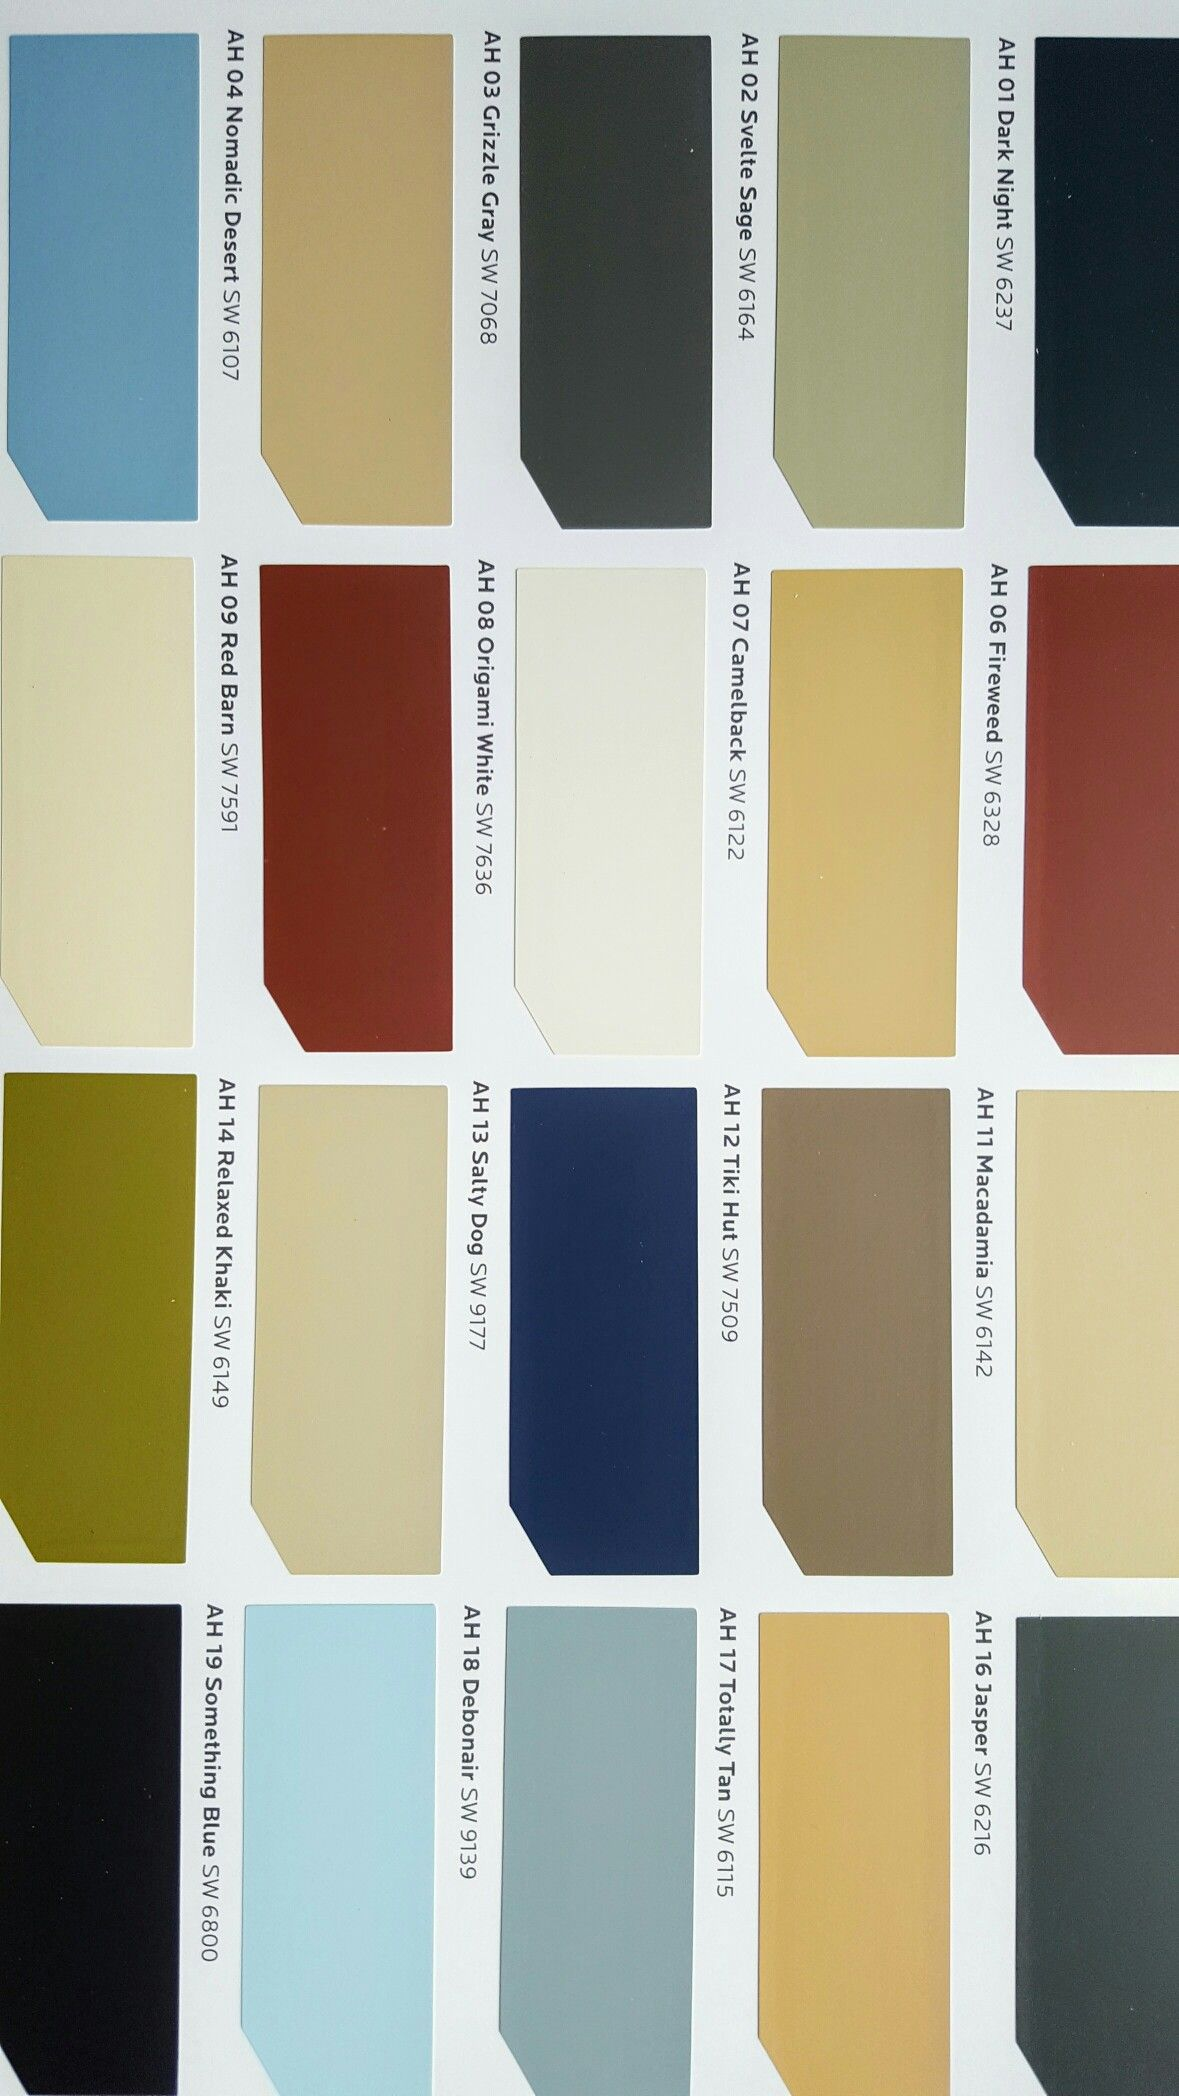 american heritage sherwin williams paint colors in 2019. Black Bedroom Furniture Sets. Home Design Ideas